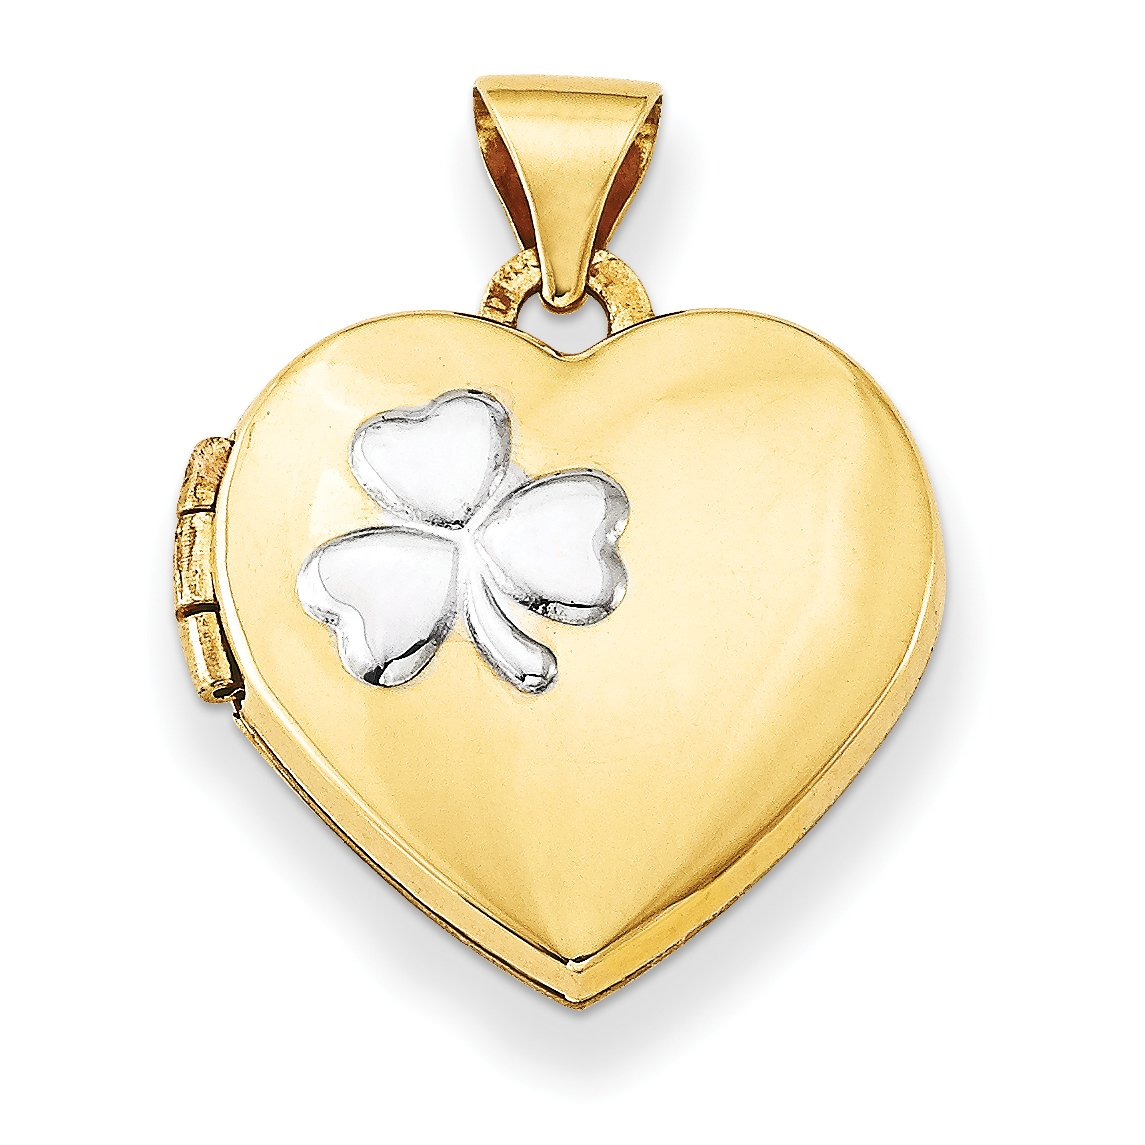 ICE CARATS 14k Yellow Gold 15mm Heart Photo Pendant Charm Locket Chain Necklace That Holds Pictures Fine Jewelry Gift Set For Women Heart